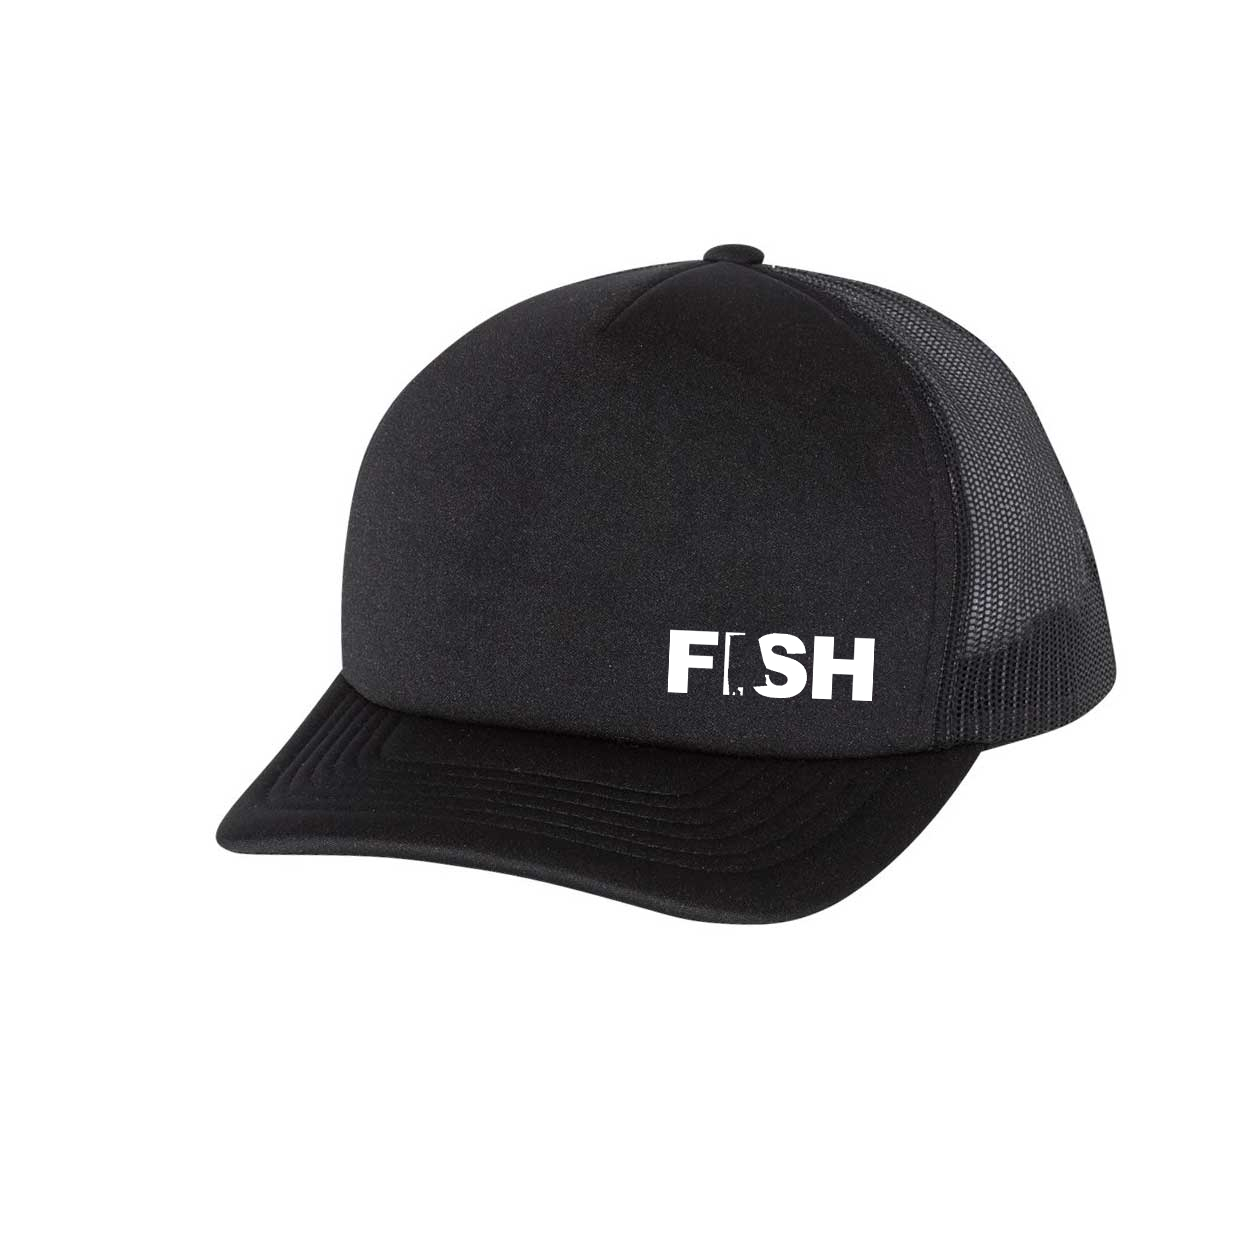 Fish Alabama Night Out Premium Foam Trucker Snapback Hat Black (White Logo)